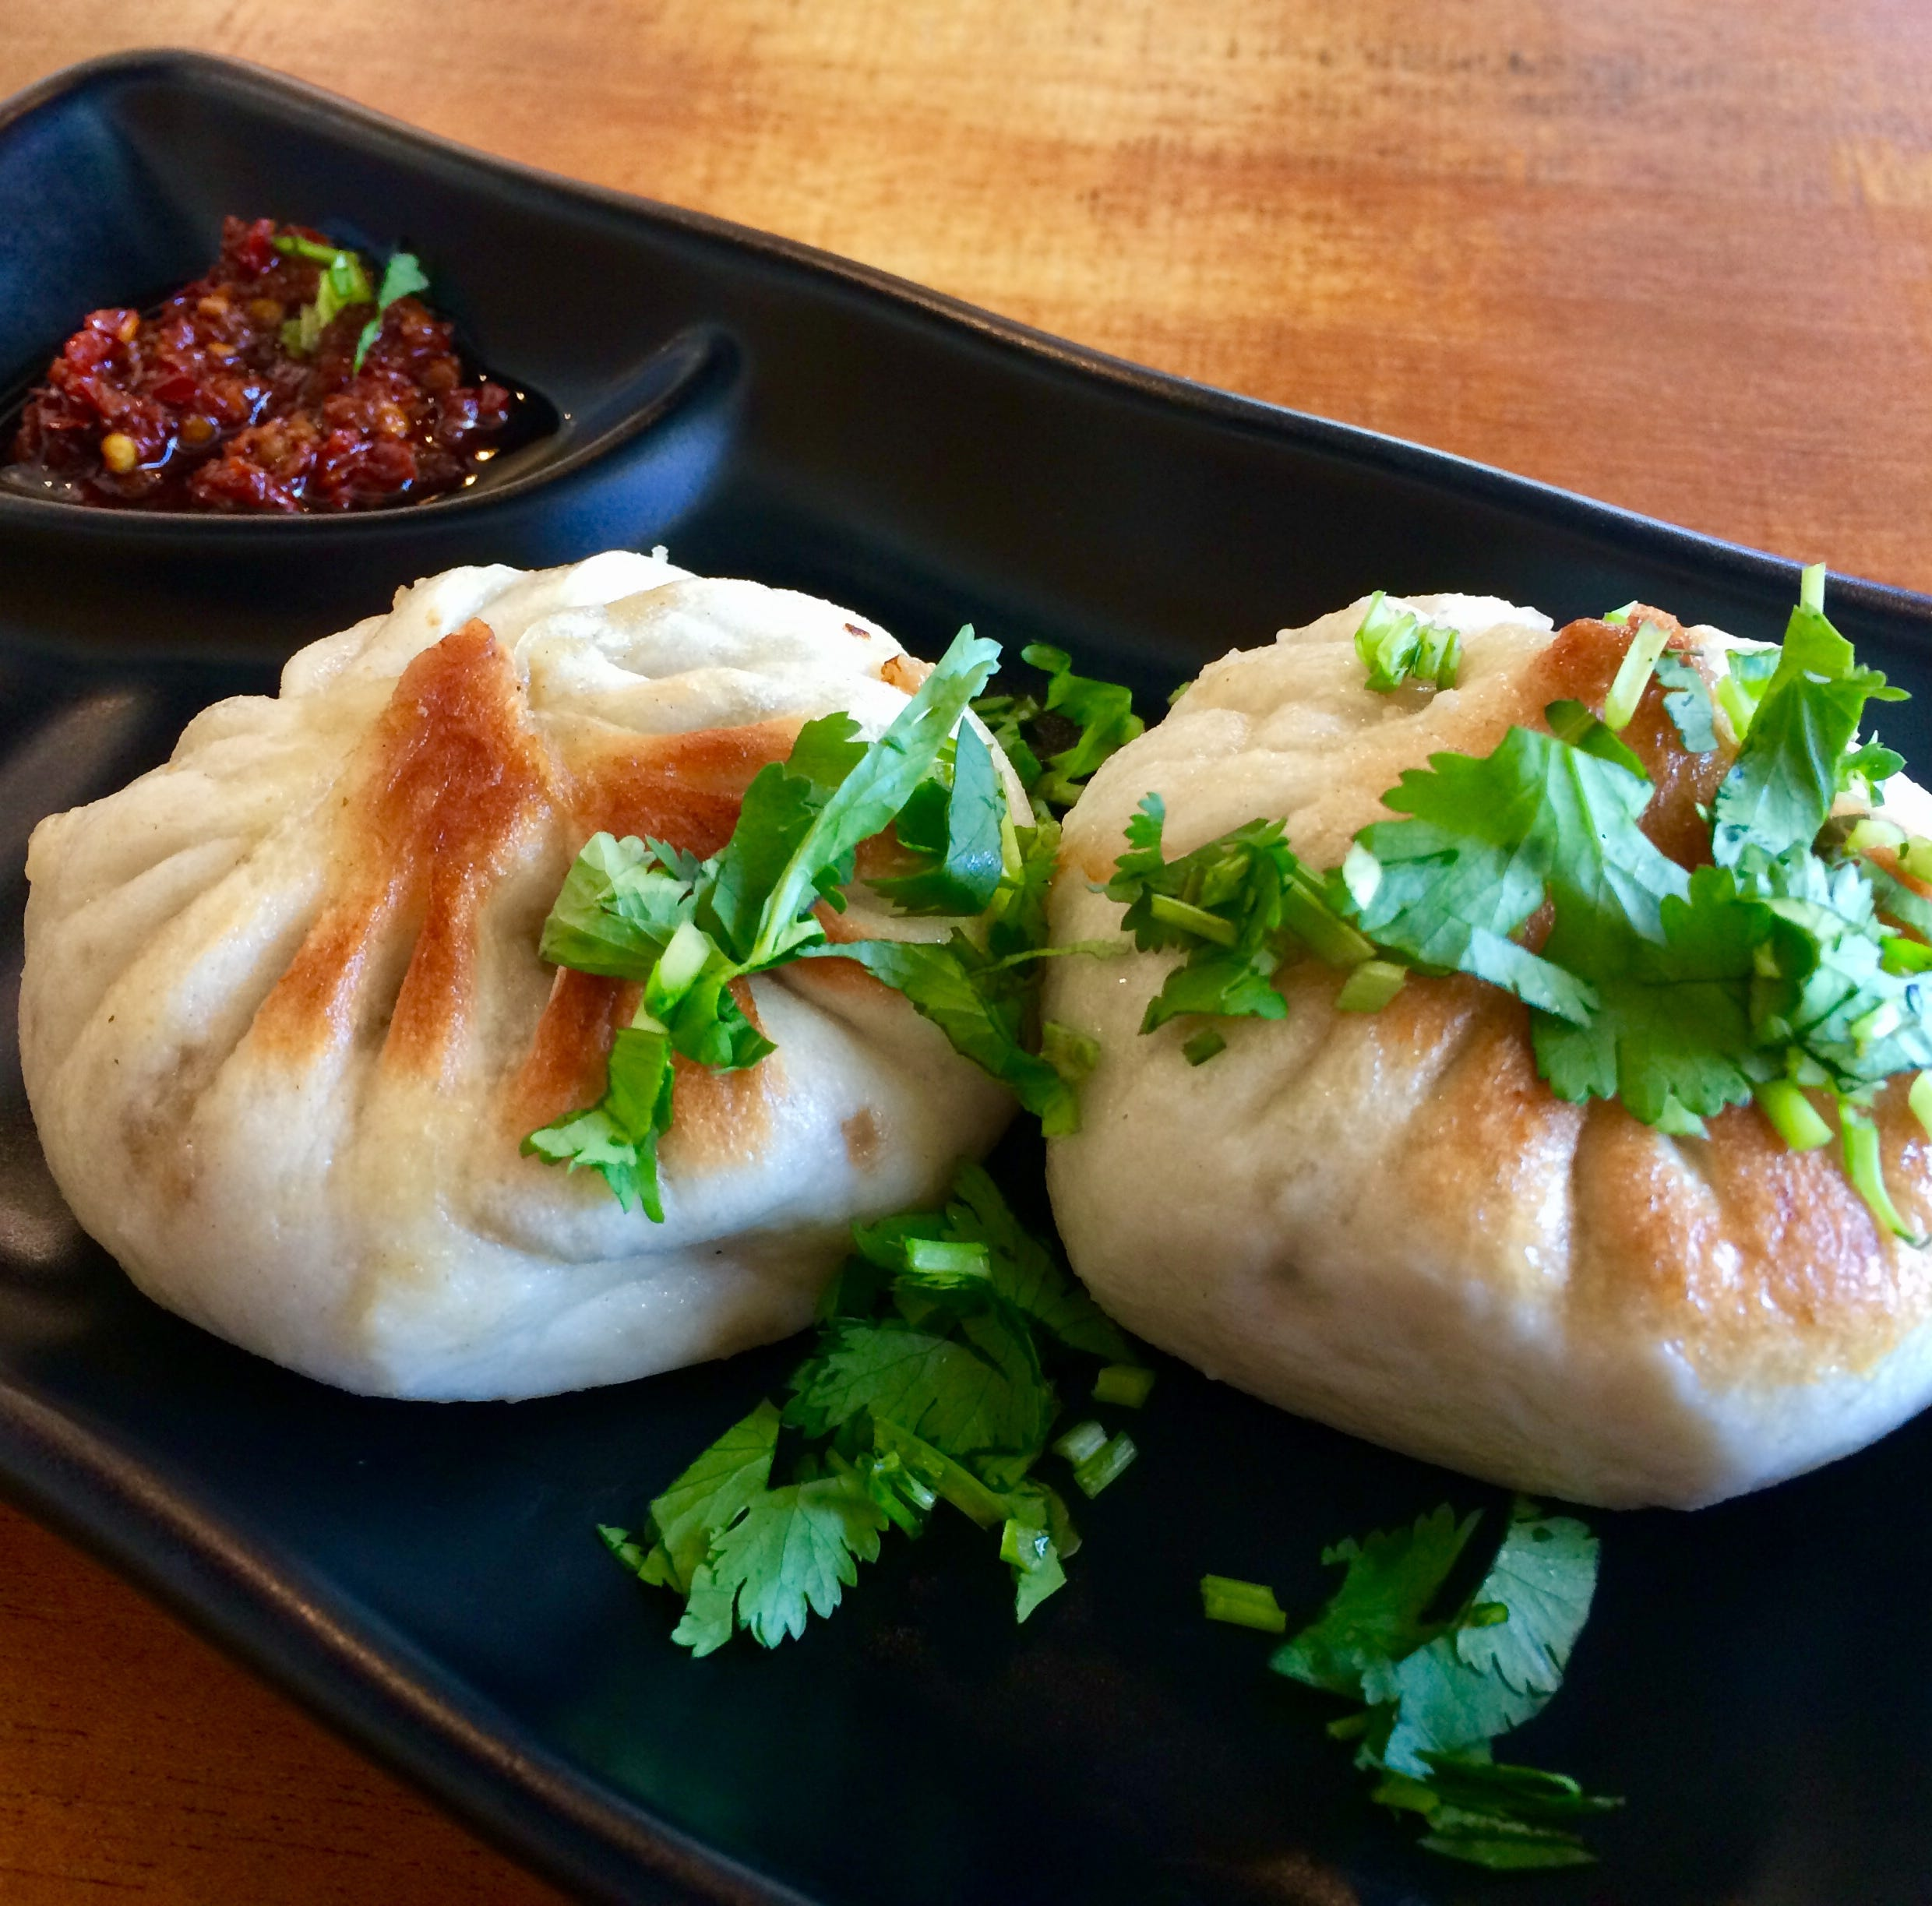 Chinese dumplings, bao buns play starring role at Steamboys